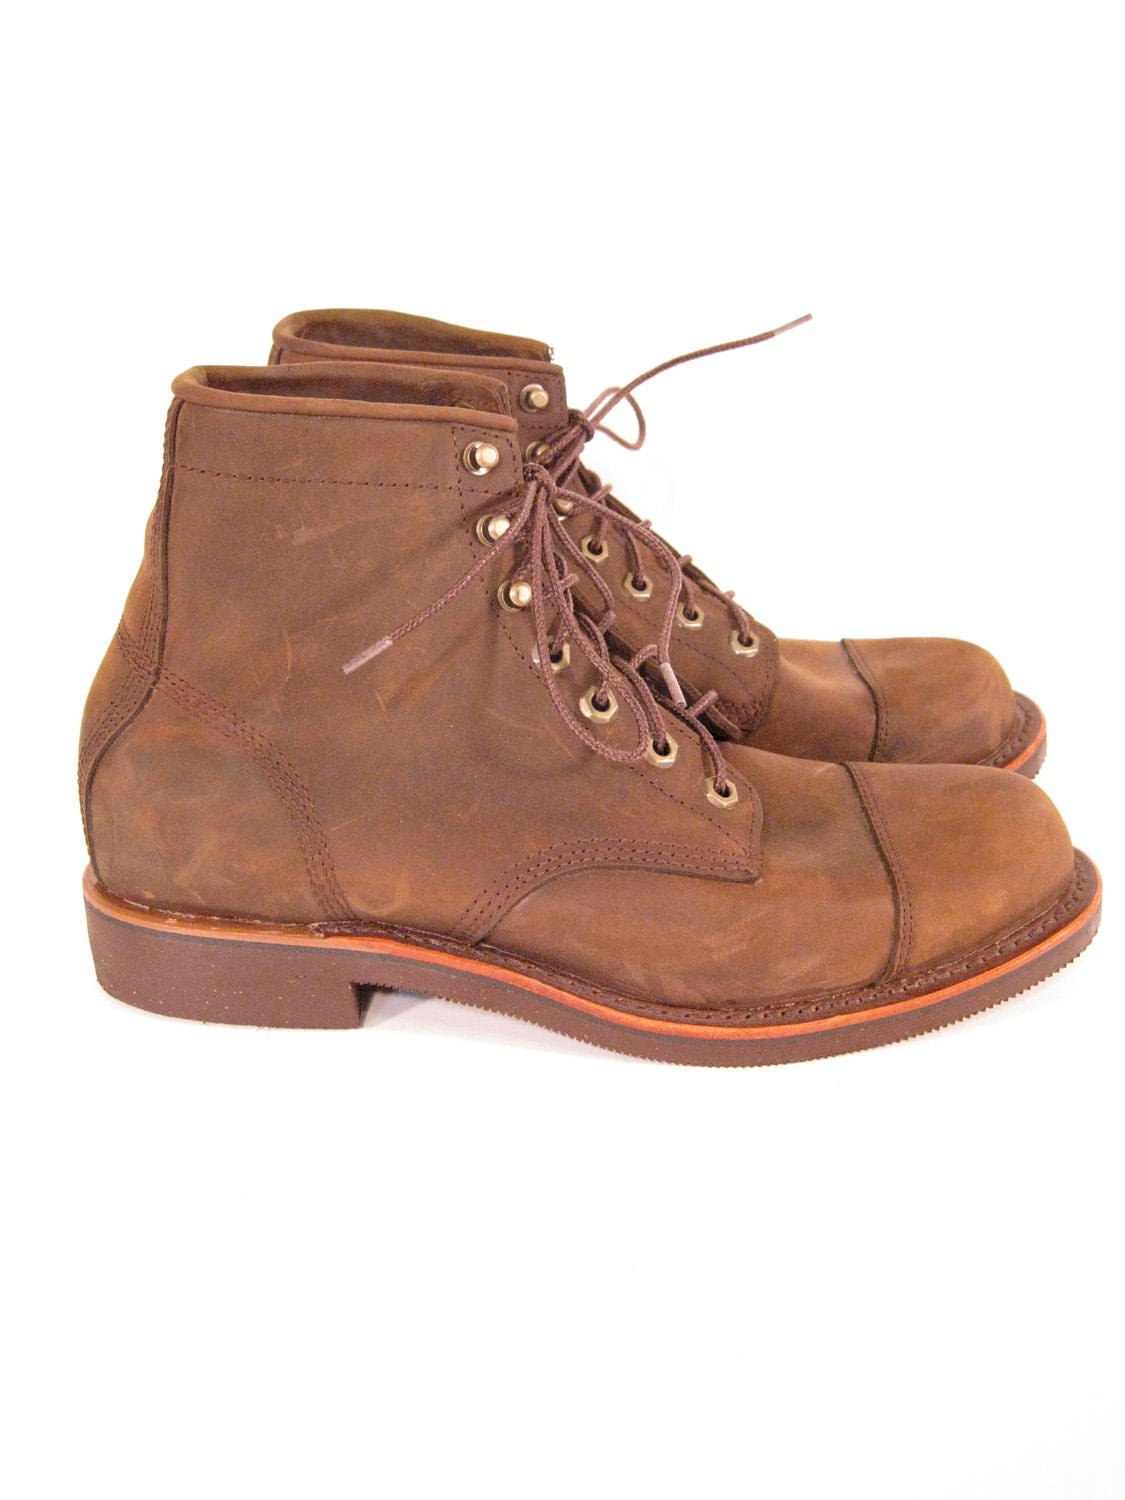 brown leather ankle boots size 9 5 katahdin by